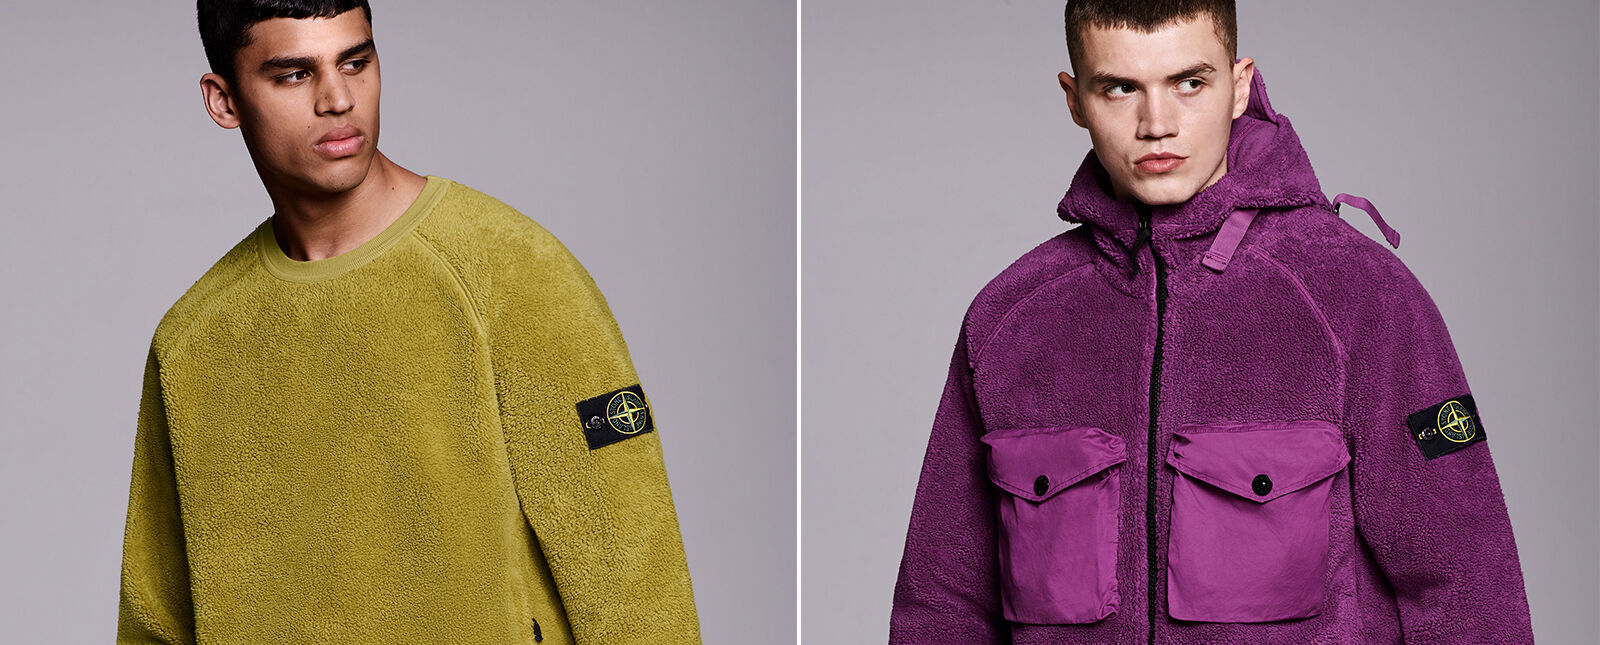 Two separate pictures, one of a model wearing a mustard borg fleece crewneck sweatshirt with raglan sleeves, the other one wearing a purple borg fleece sweatshirt with hood, black zipper fastening and two chest pockets with flap and snap.